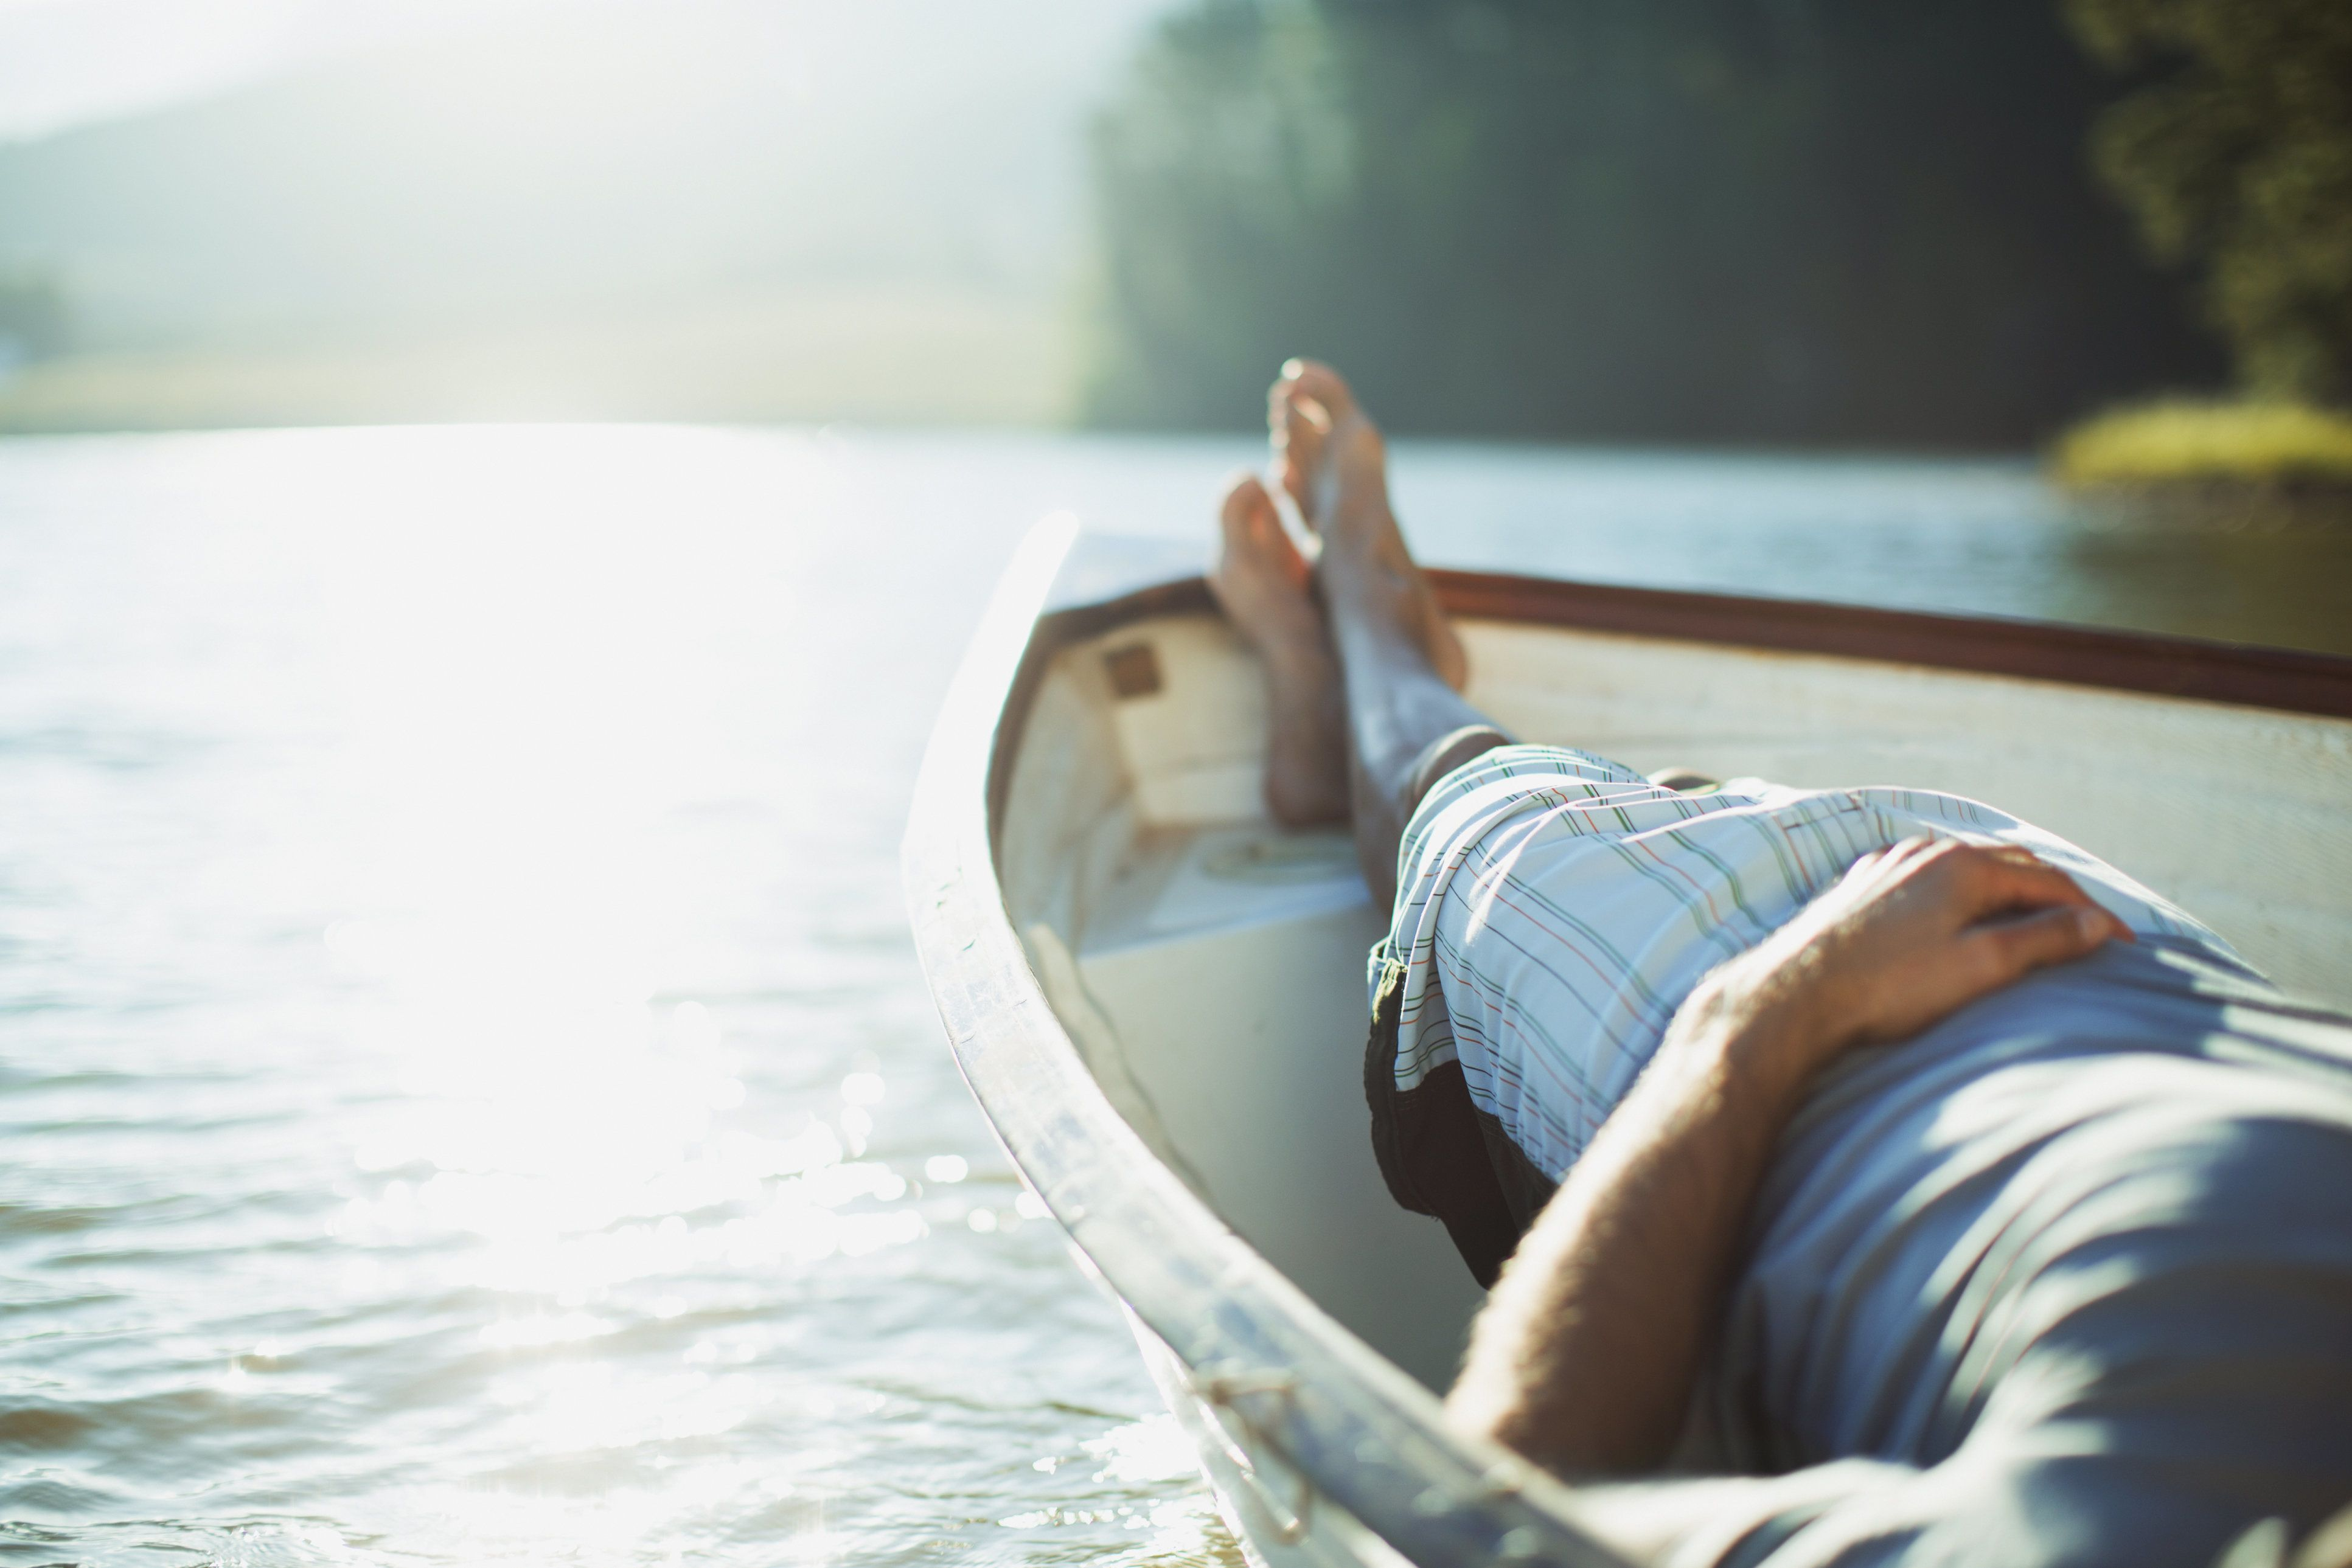 In a new study comparing a meditation retreat with just relaxing in the same locale, both options improved stress regulation, immune function and other cellular markers in the blood.